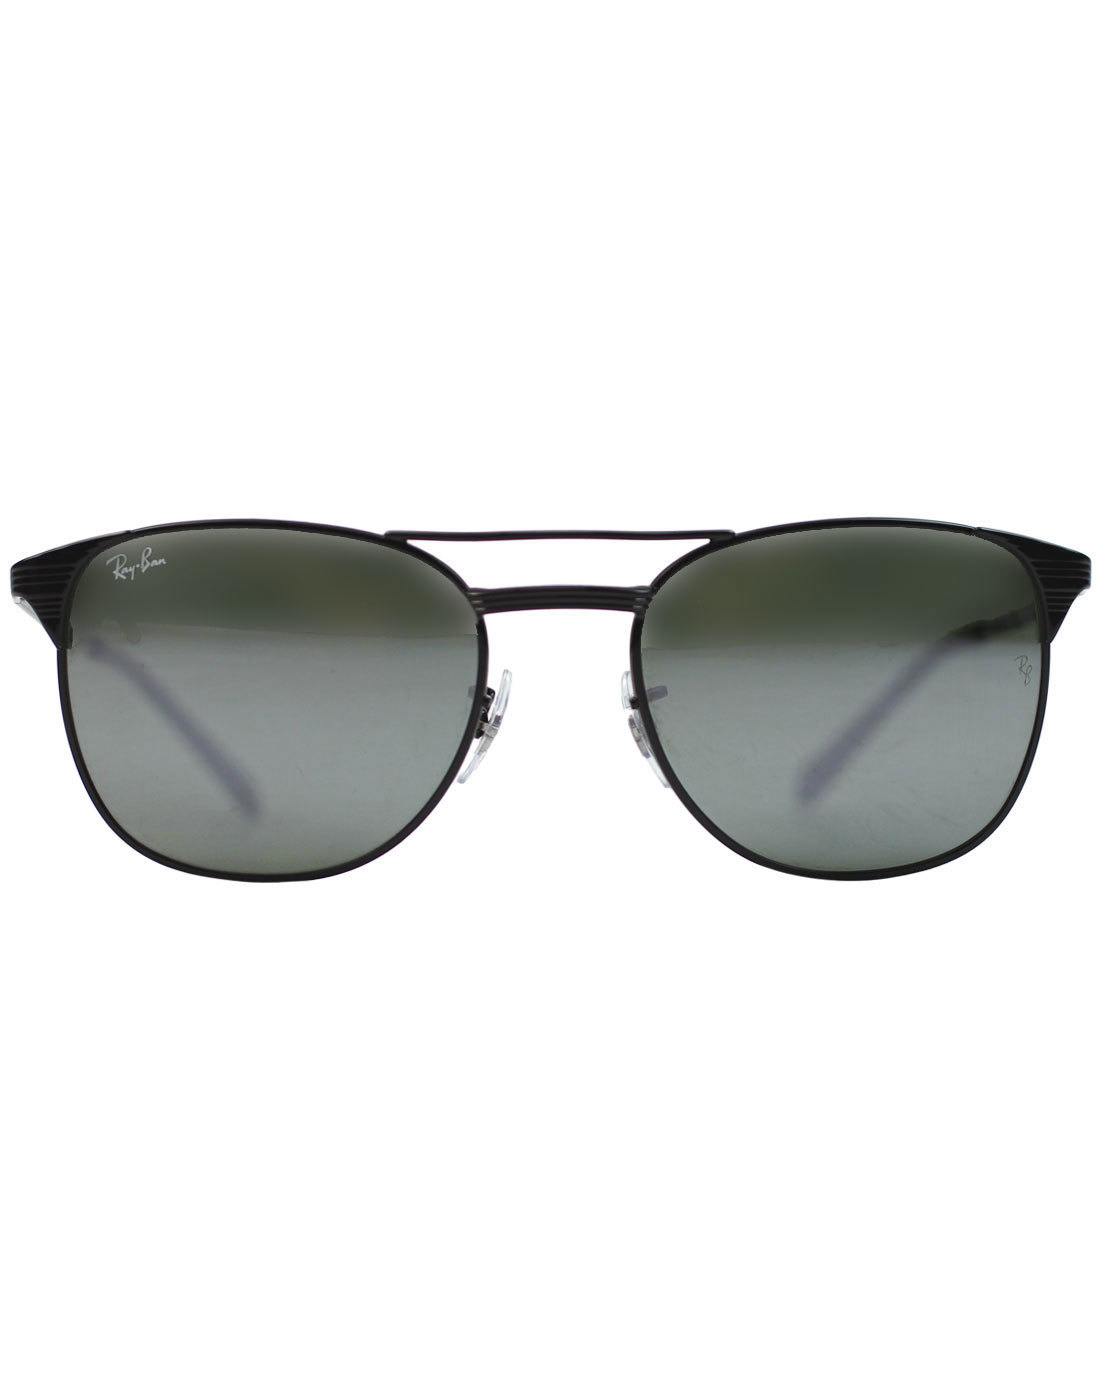 Signet RAY-BAN Retro 50s Sunglasses - Black Mirror